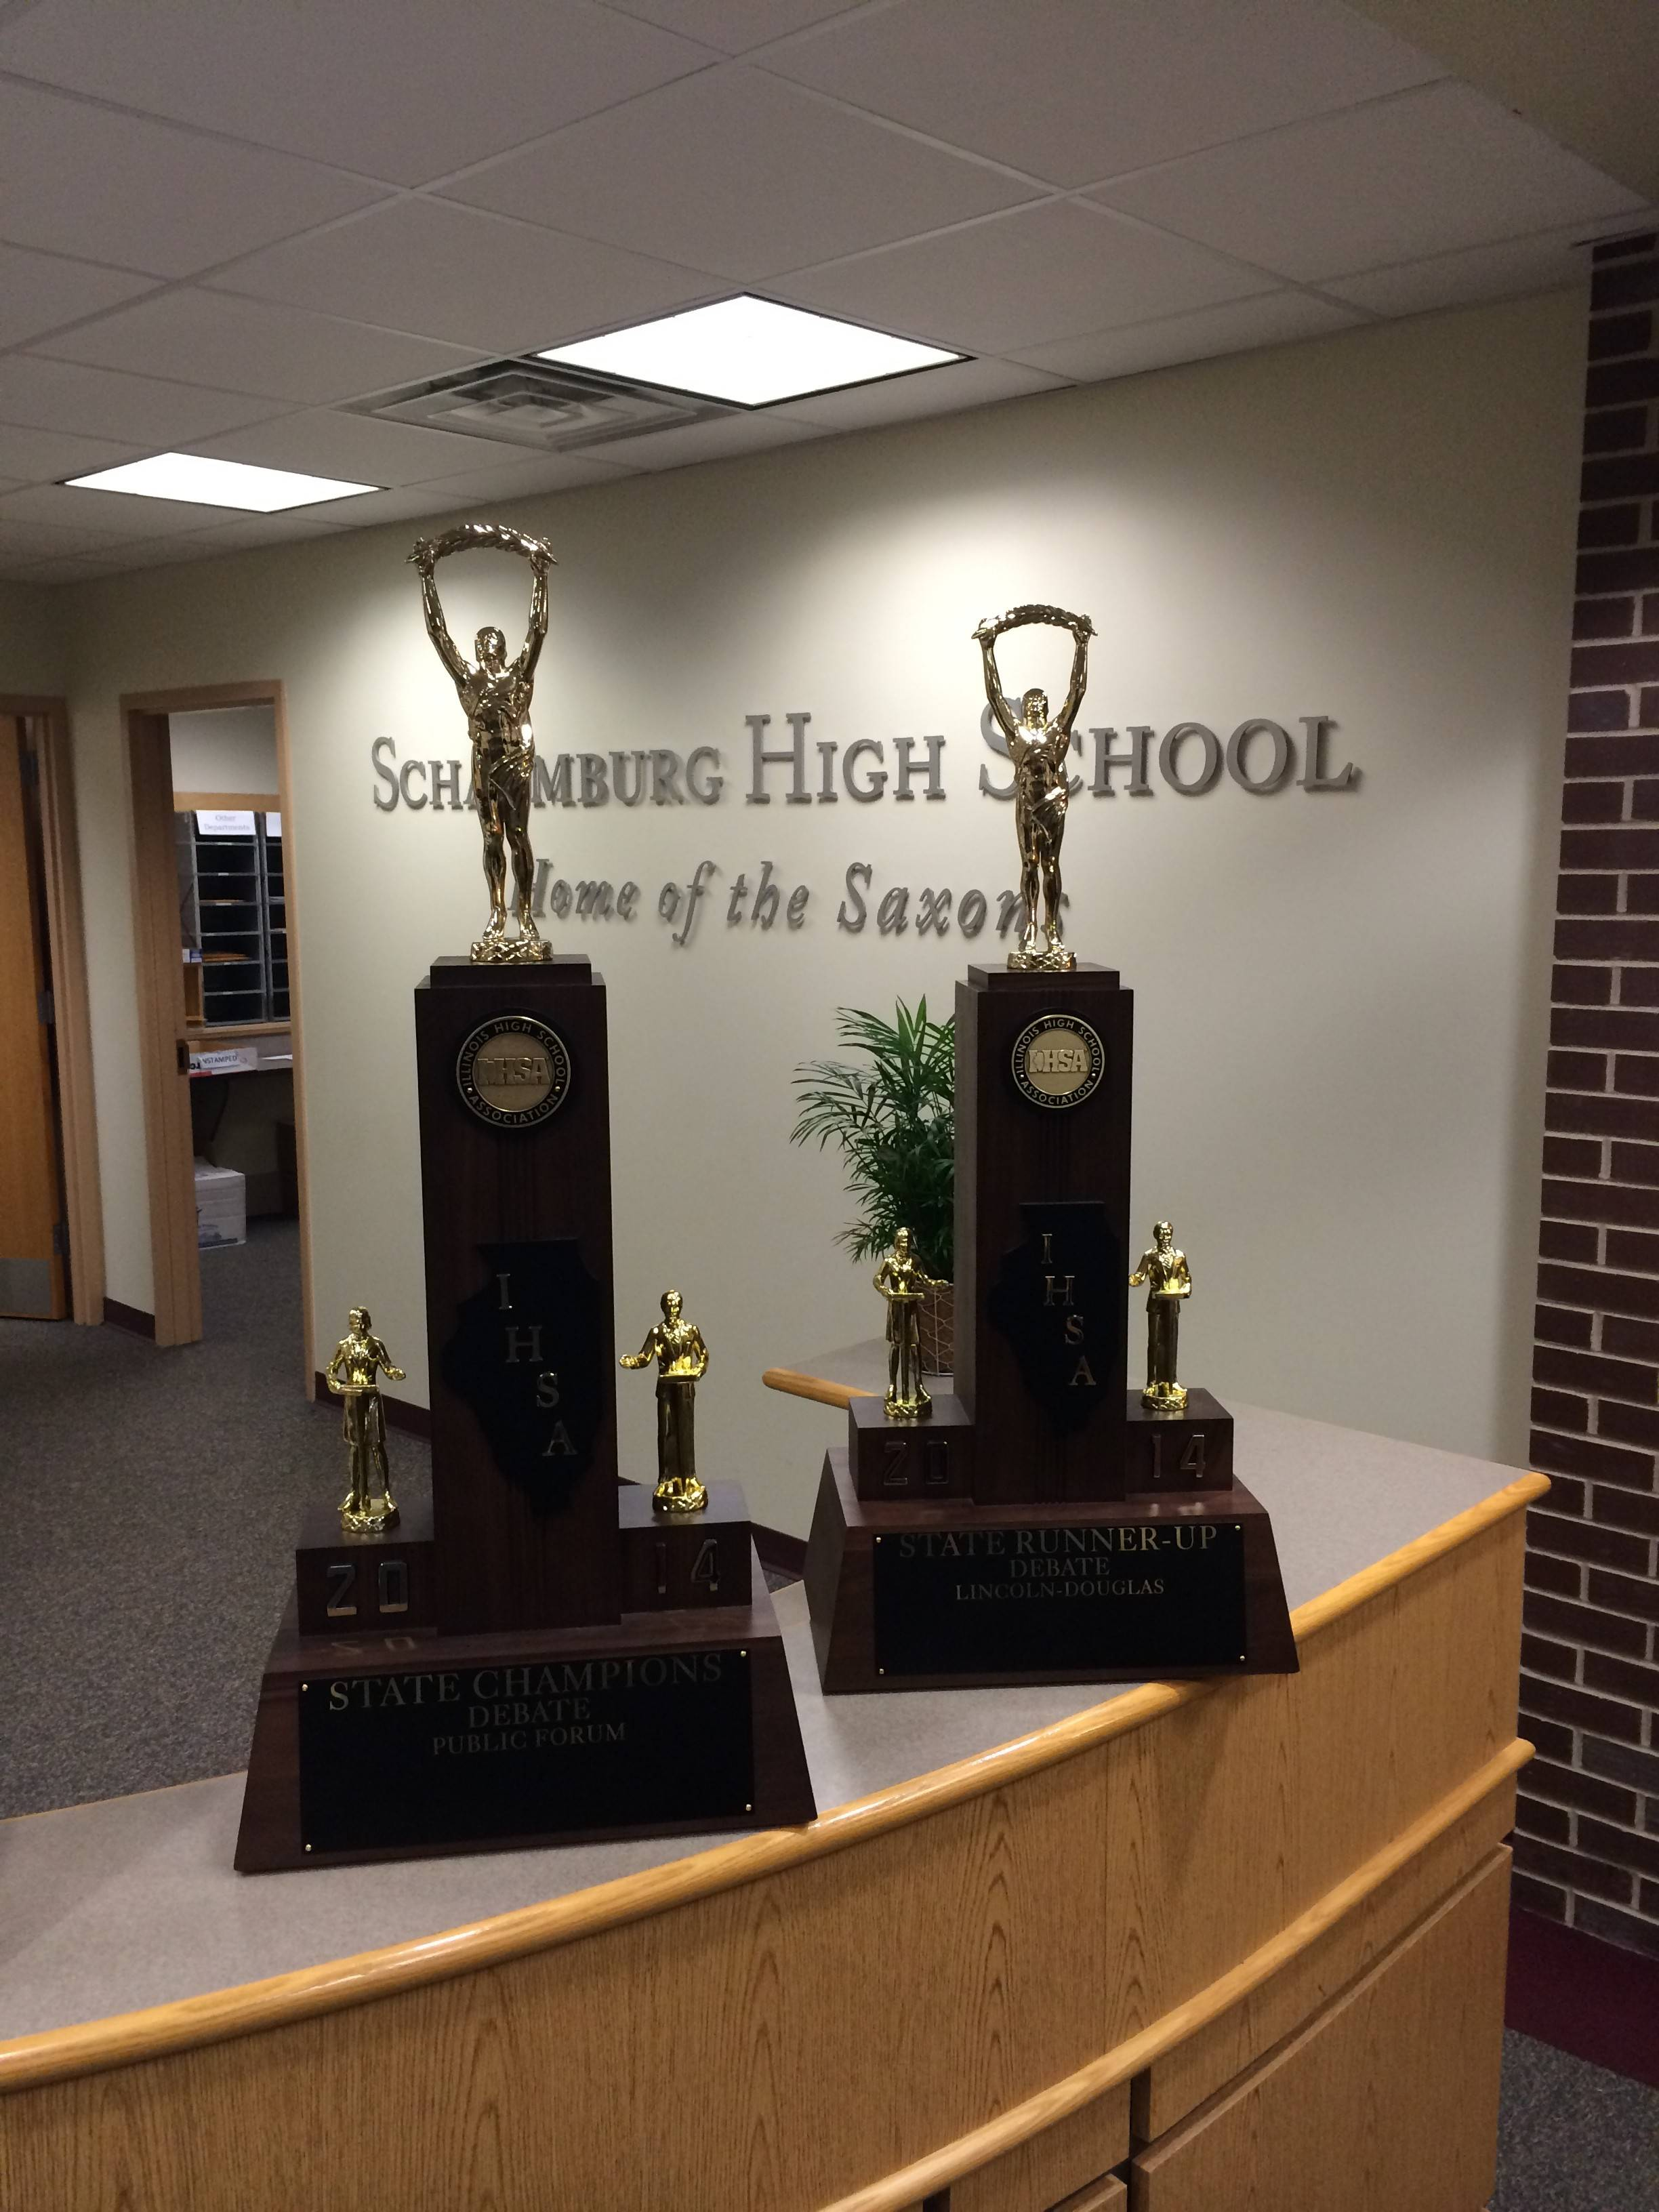 These are the trophies Schaumburg High School won in state debate.